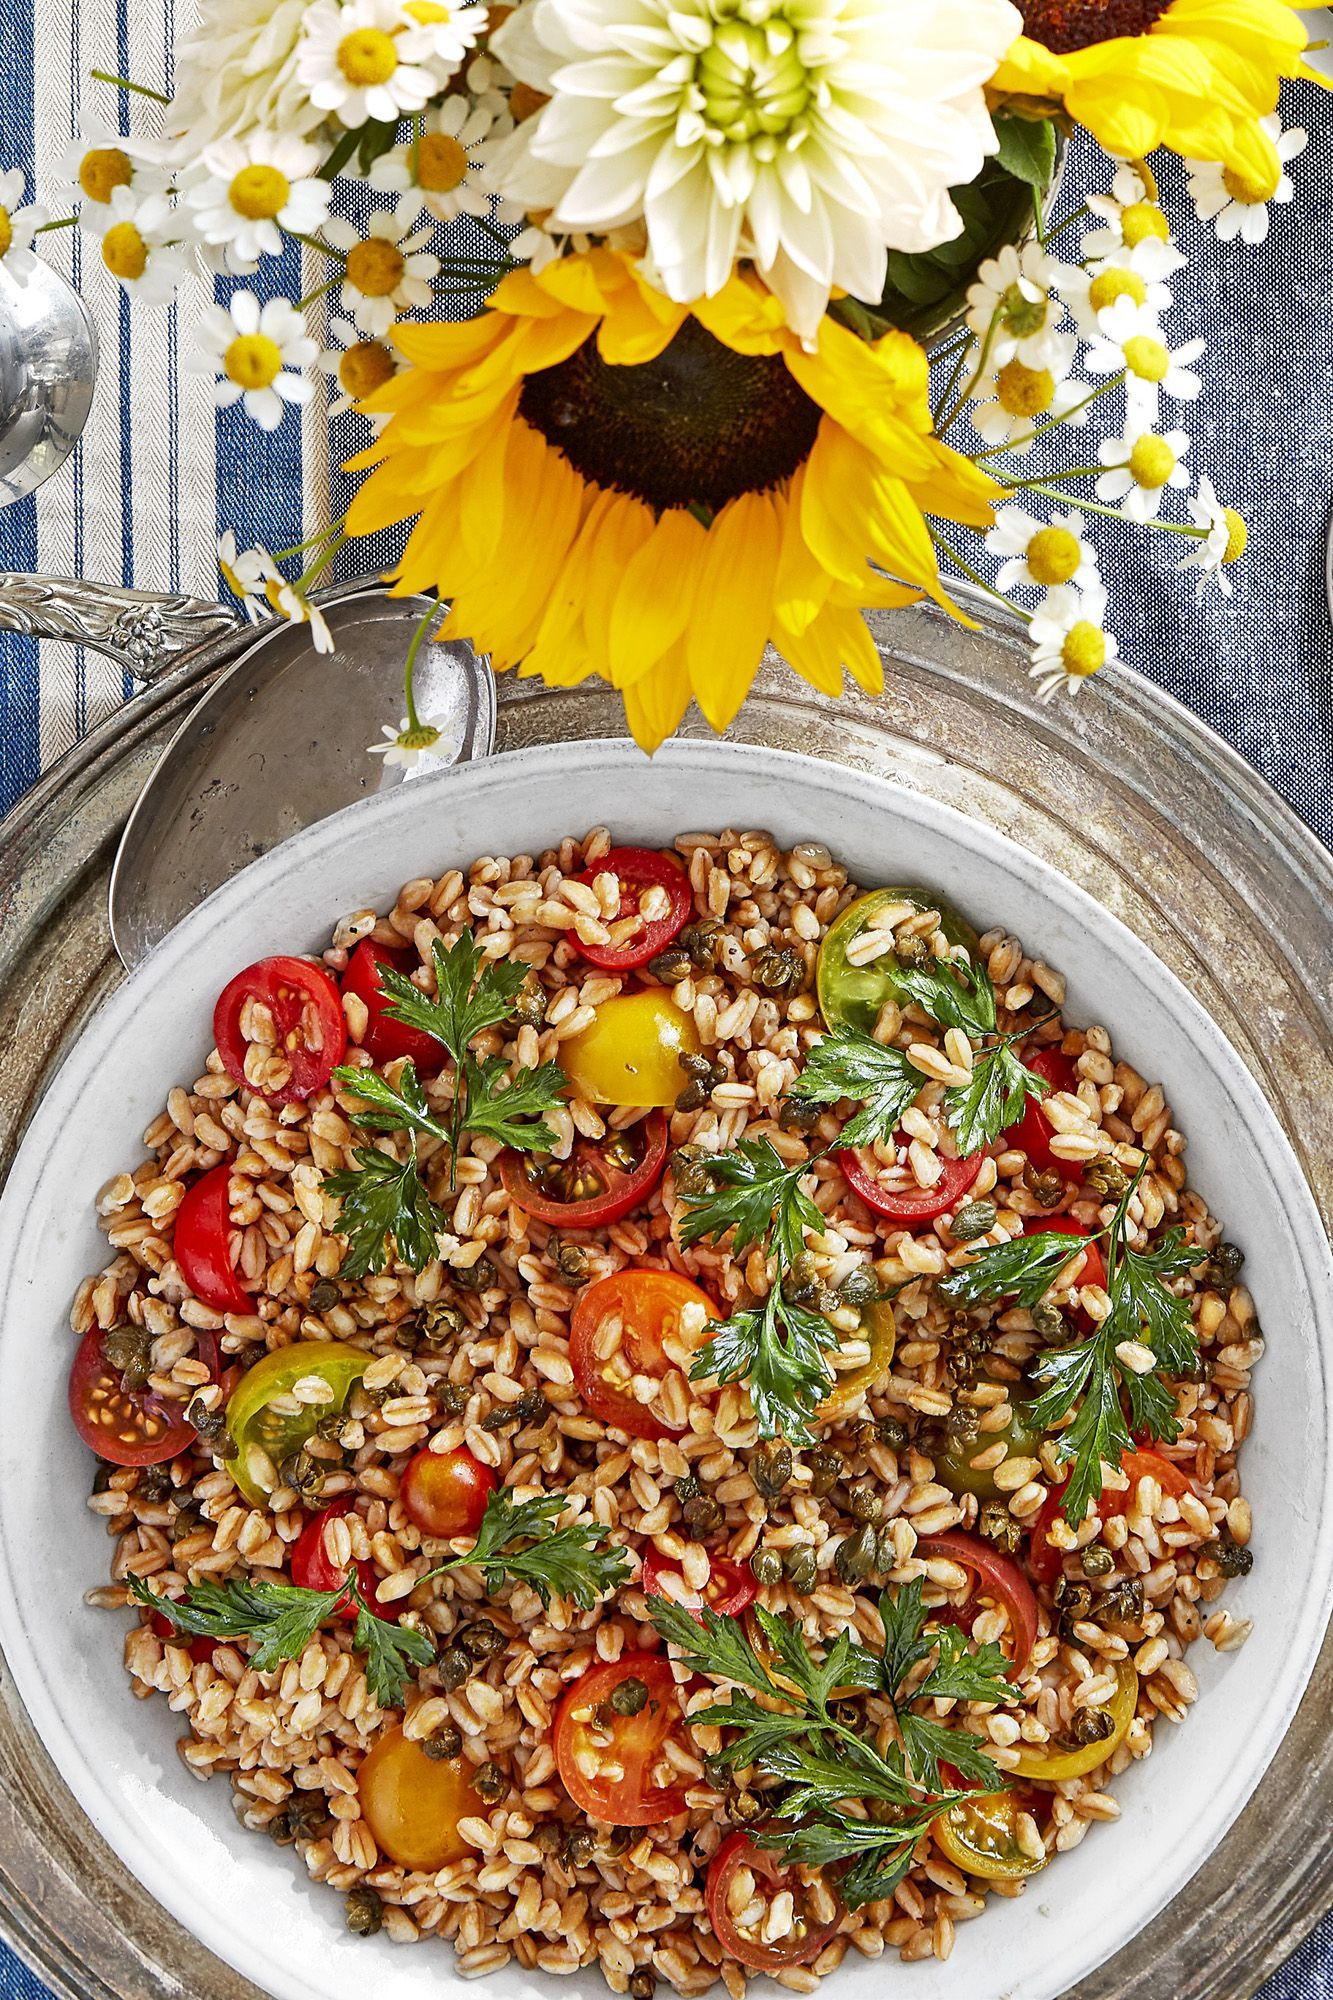 TOP-7 summer dishes - the best recipes for every day